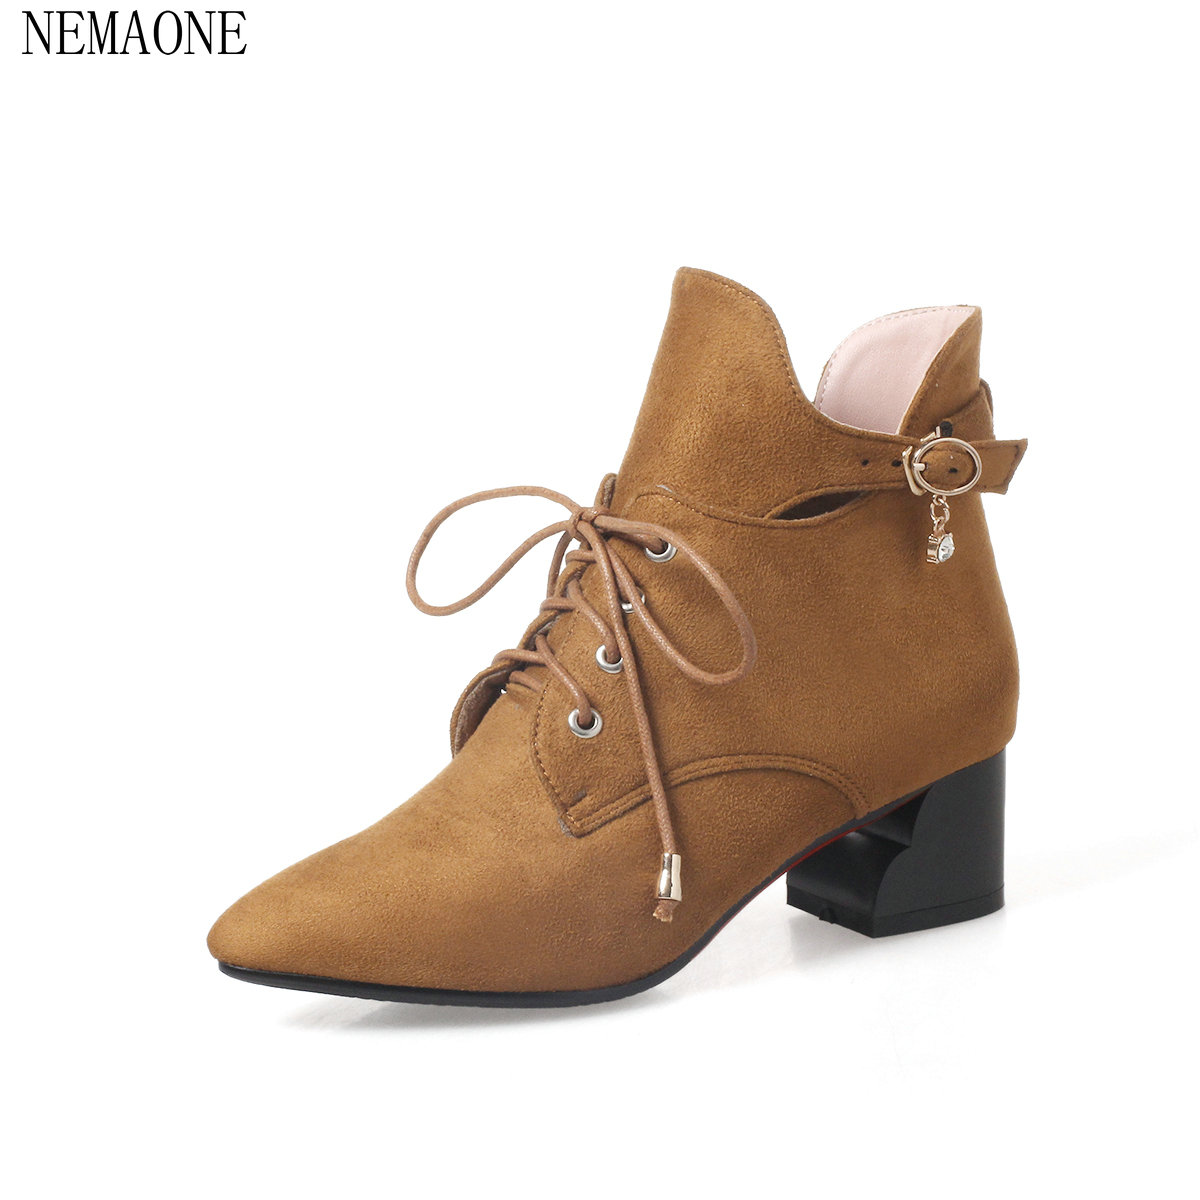 NEMAONE 2018 ankle boots high quality hot sale pu leather high pointed toe fashion lace-up rivets women red wine winter boots